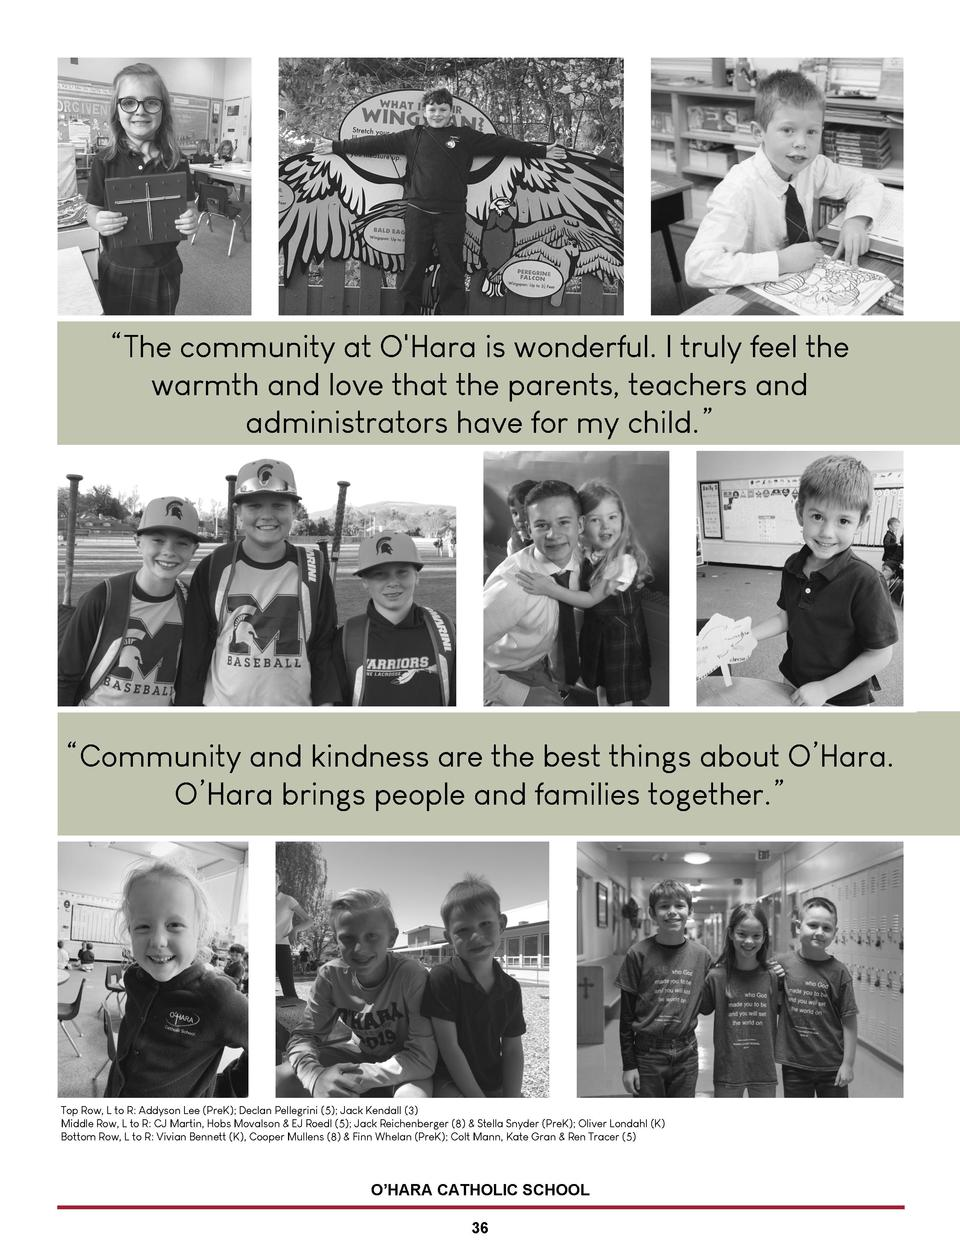 The community at O Hara is wonderful. I truly feel the warmth and love that the parents, teachers and administrators ha...